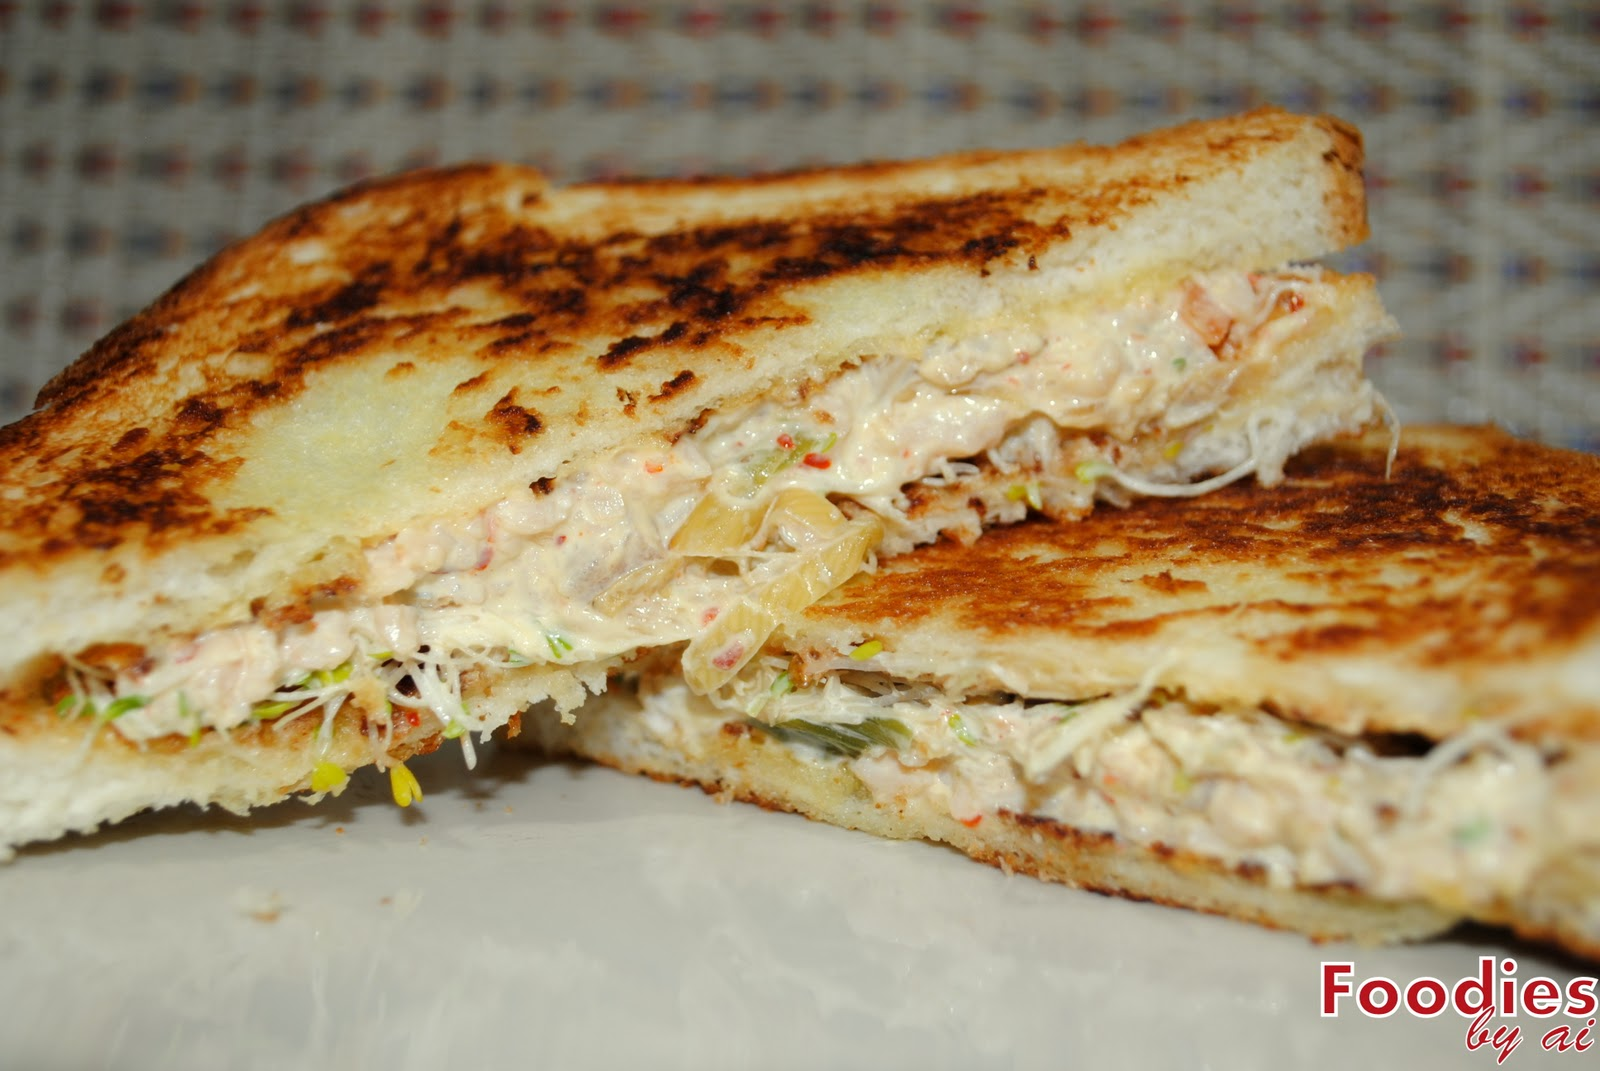 FOODIES by ai: Kimchi and Egg Grilled Sandwiches